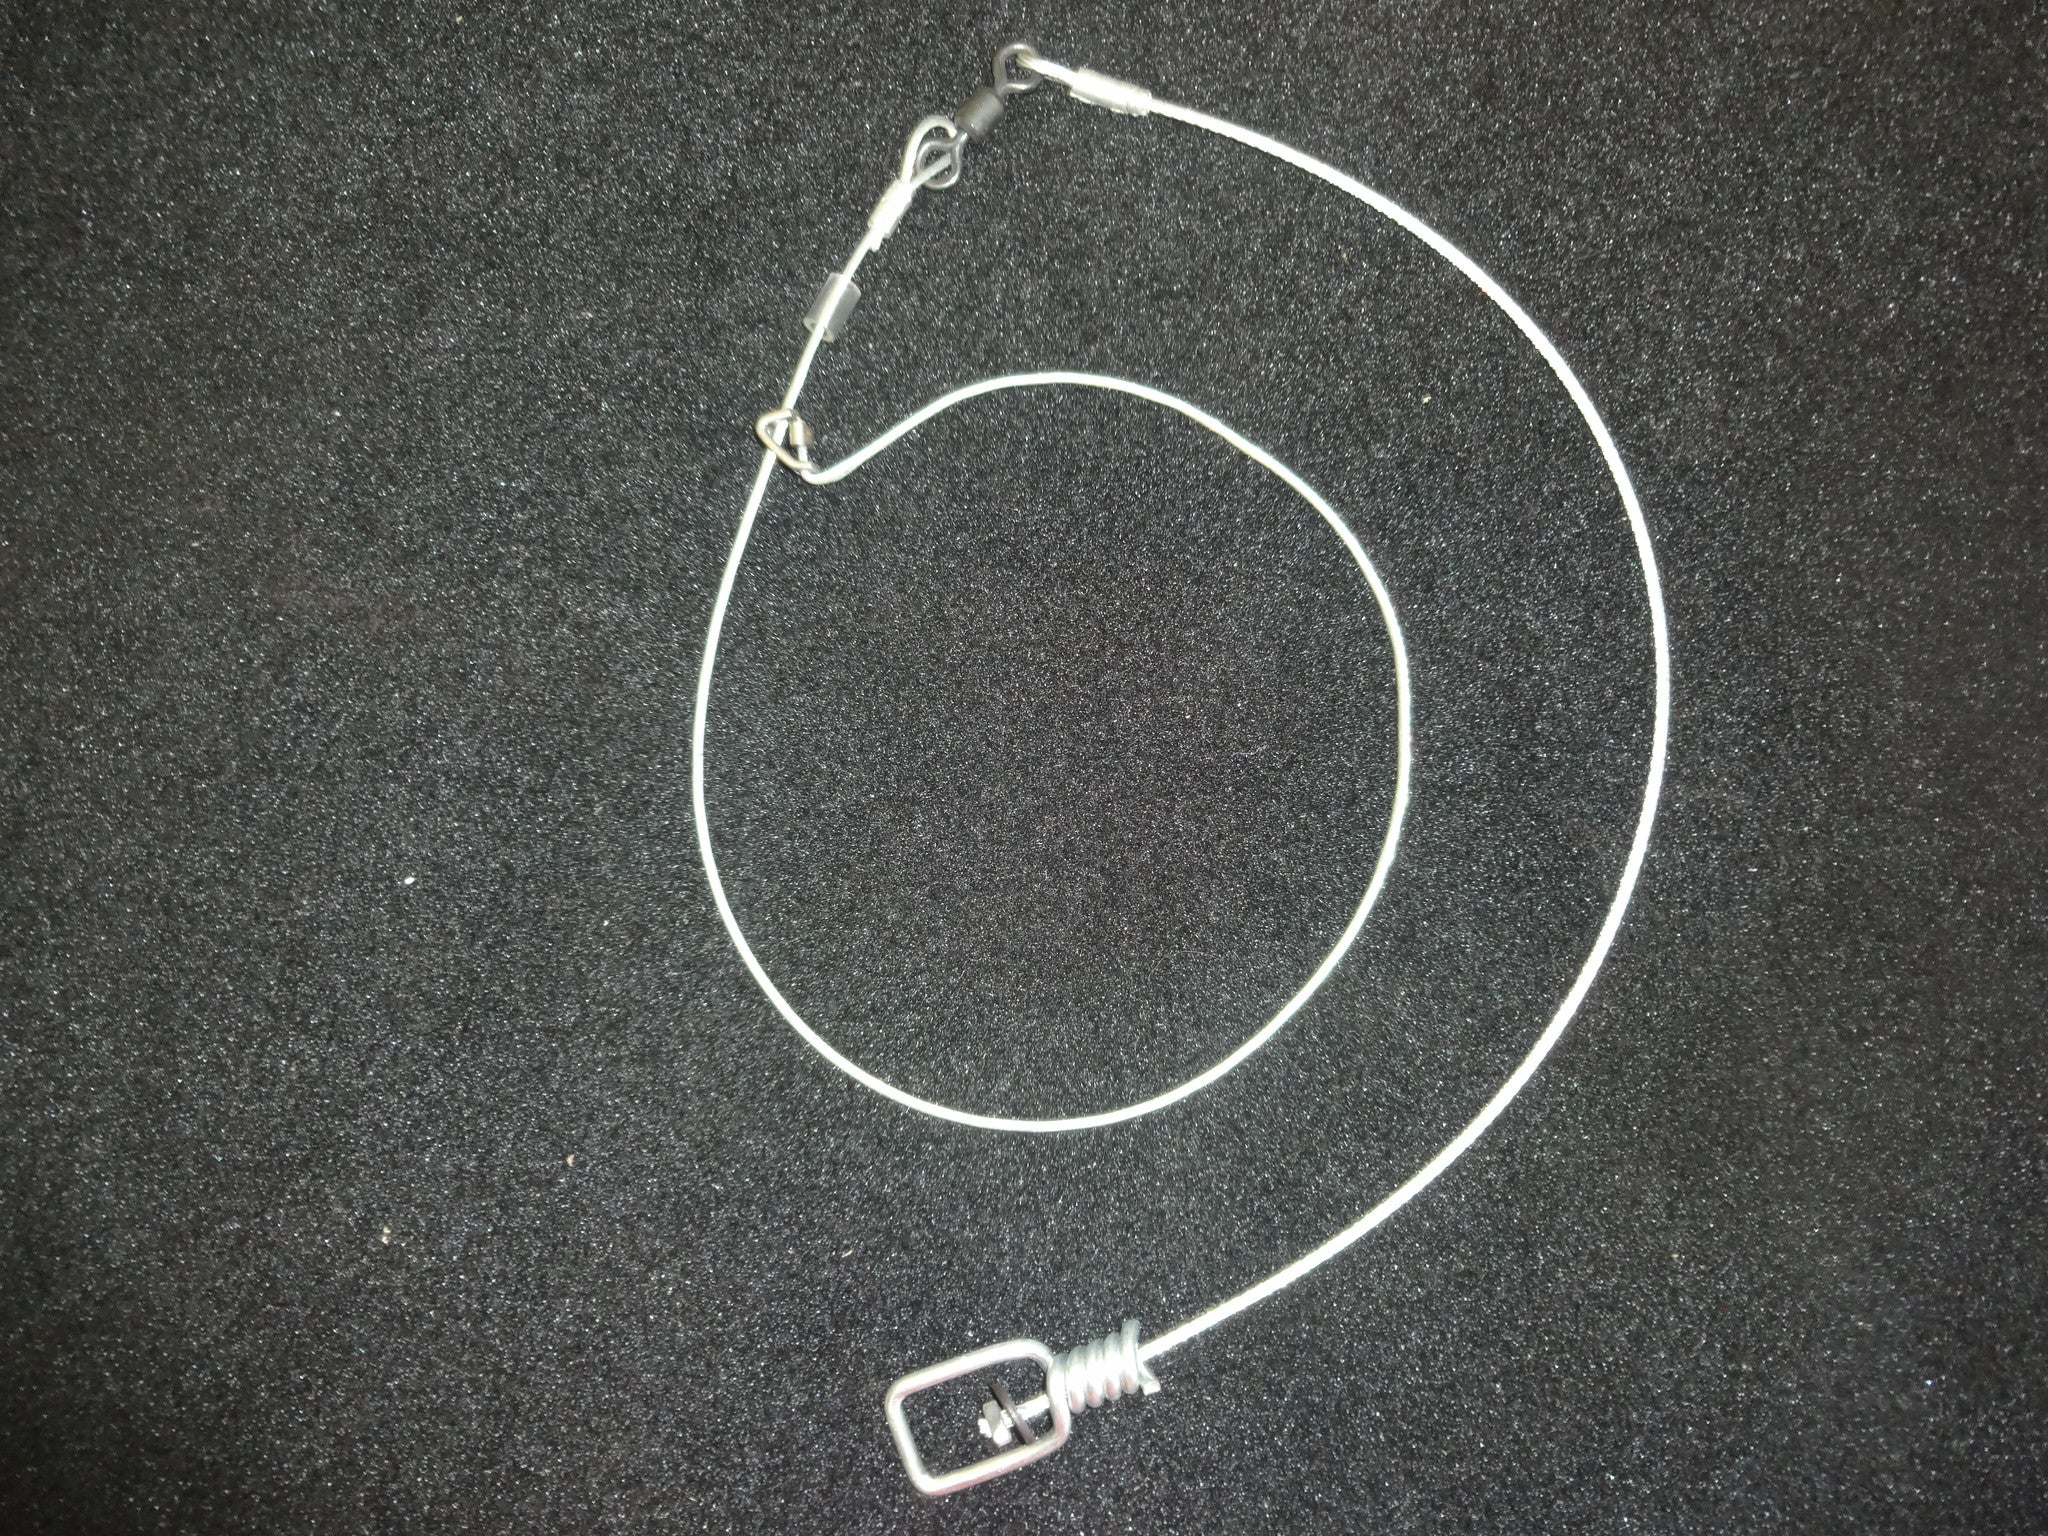 SOUTHERN SNARES OTTER SNARE - Southern Snares & Supply